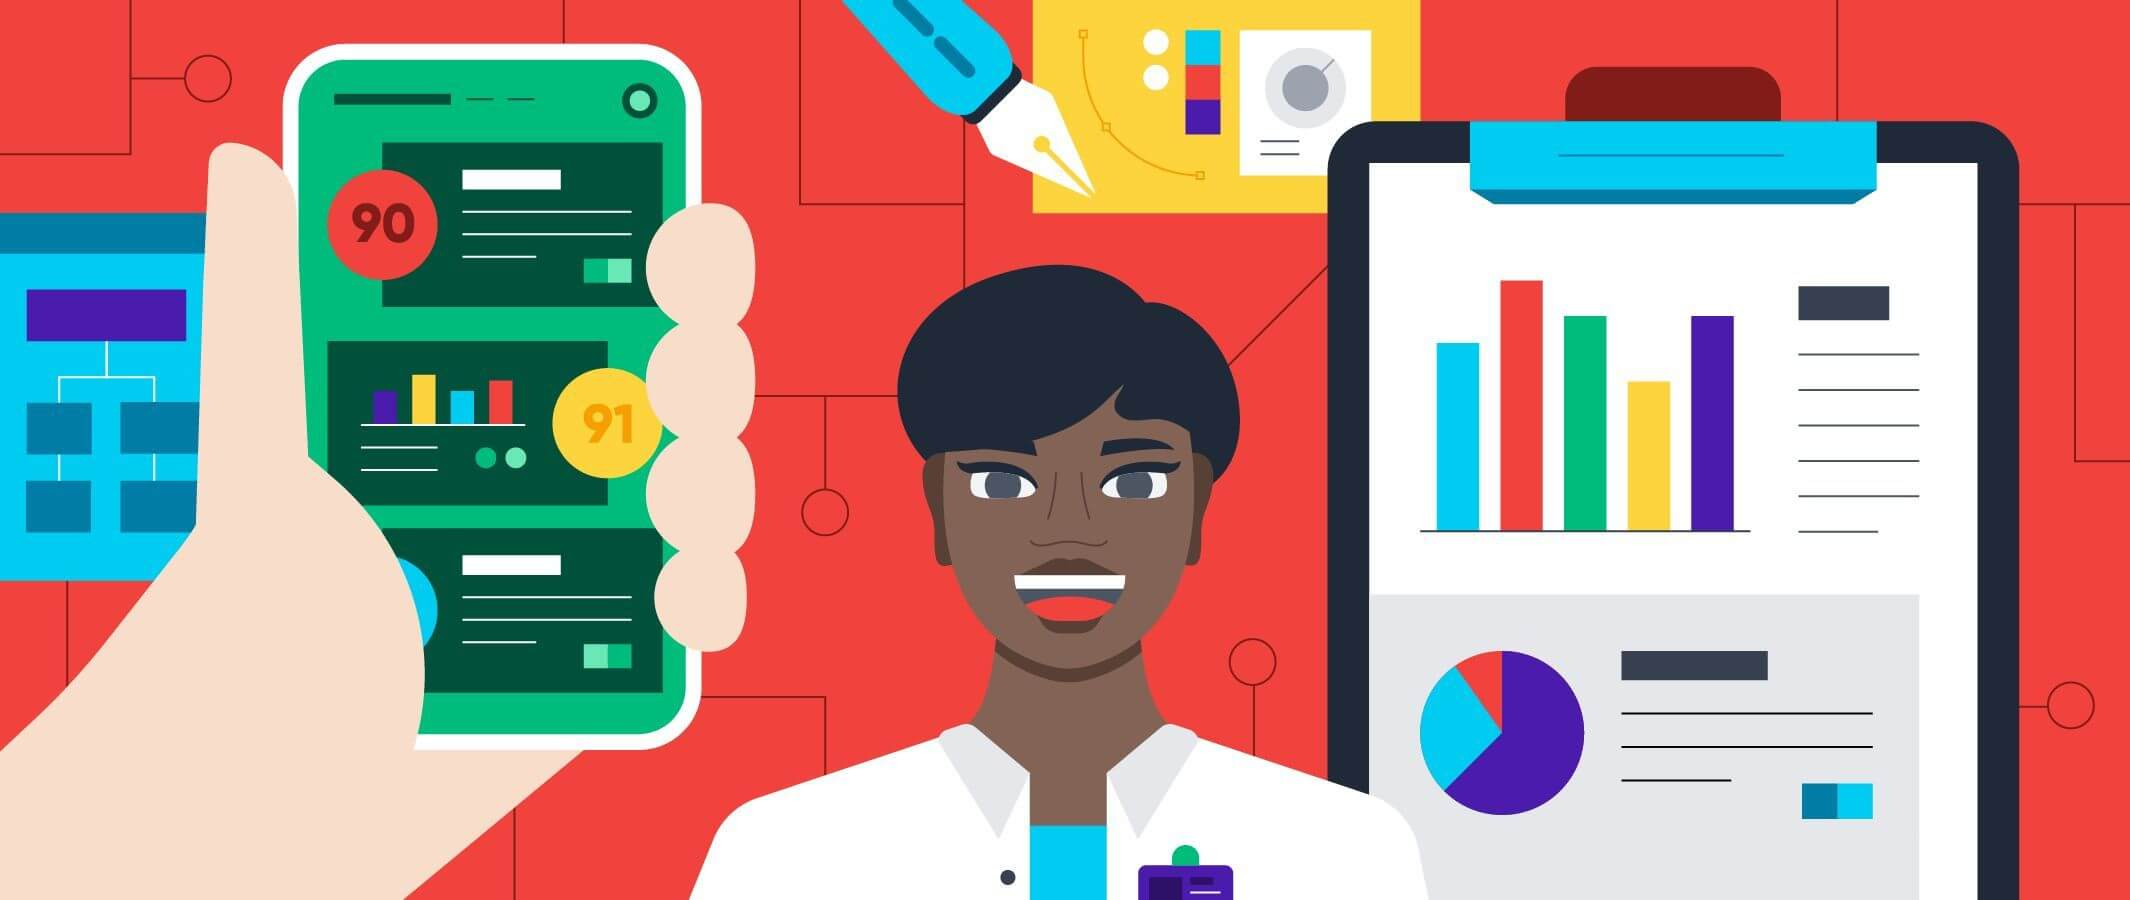 Usability Testing: The Key To Improving User Experience